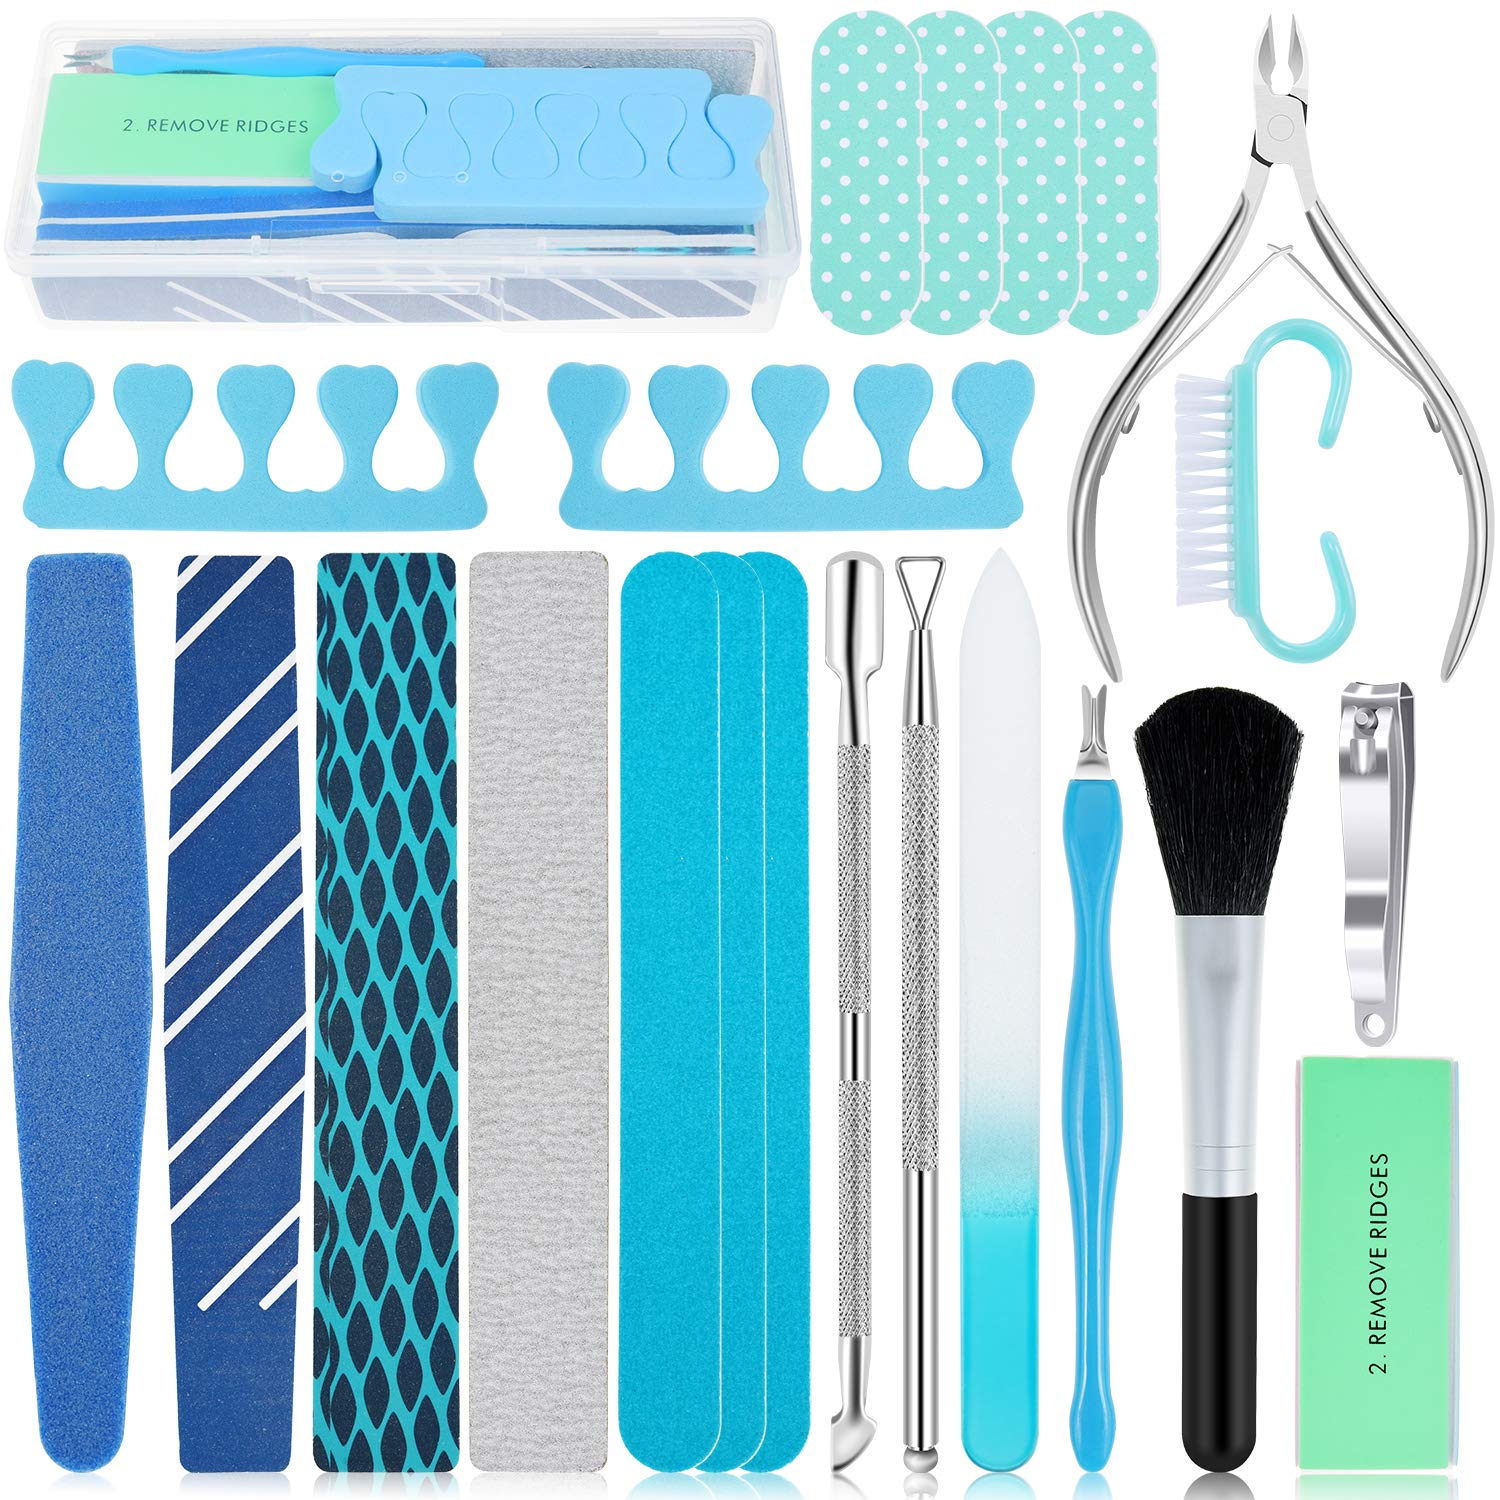 EAONE 22 in 1 Nail Files and Buffers Set Professional Manicure Pedicure Tools Kit Nail Art Tool with Nail Files and Buffers Cuticle Nipper Cuticle Pusher Nail Cutter for Women Men Hand and Foot Care : Beauty